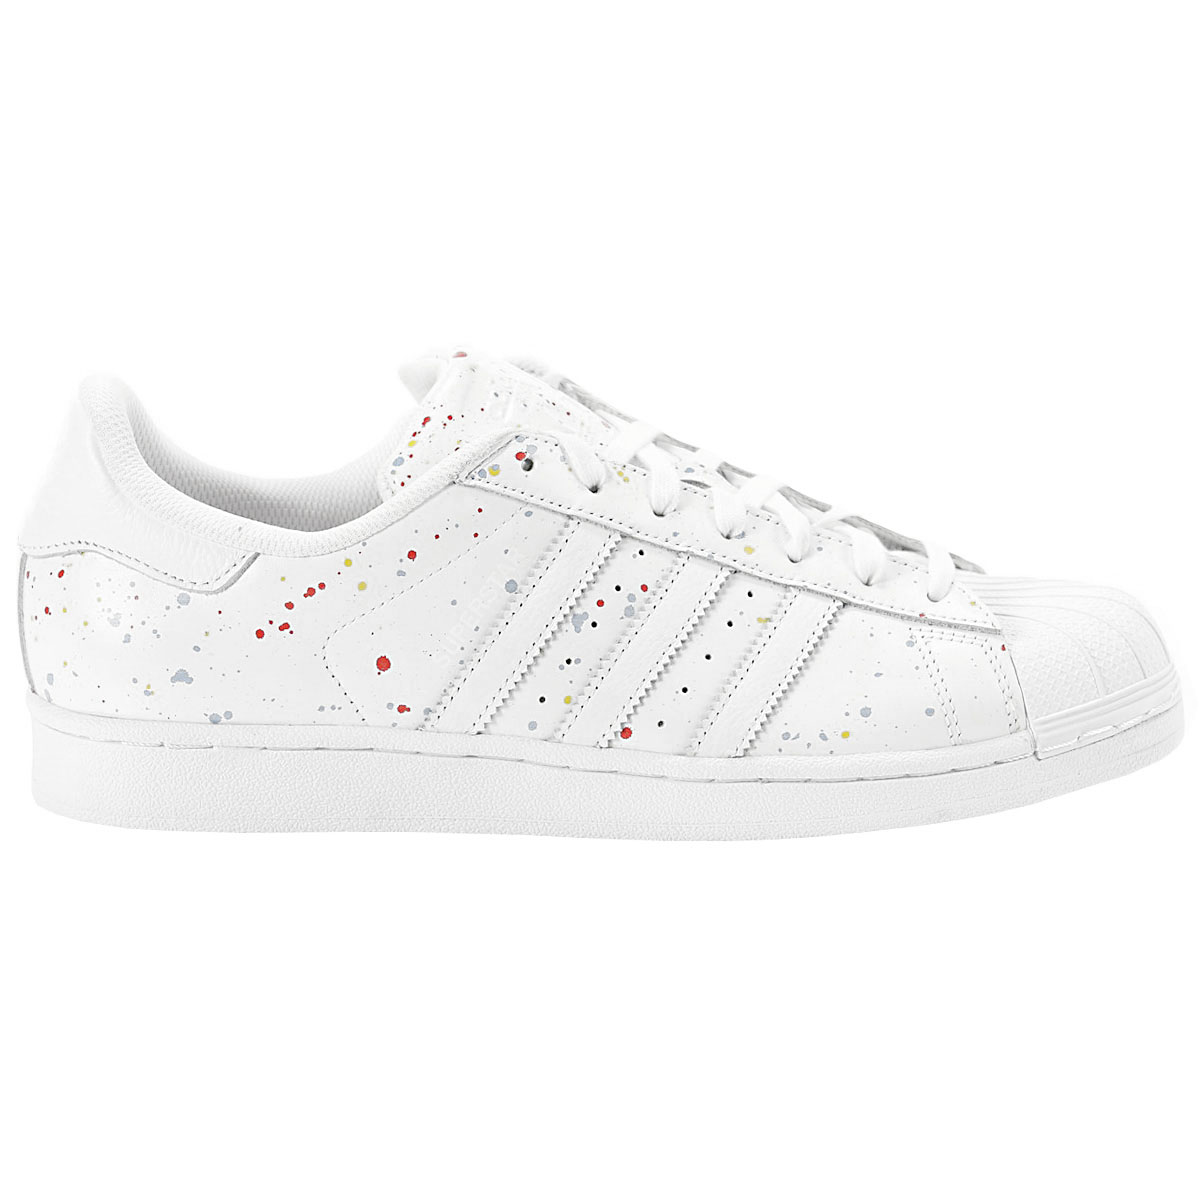 best authentic e6f54 1ac42 Adidas Originals Superstar 2 White Men s Sneakers Shoes Gym Shoe New ...